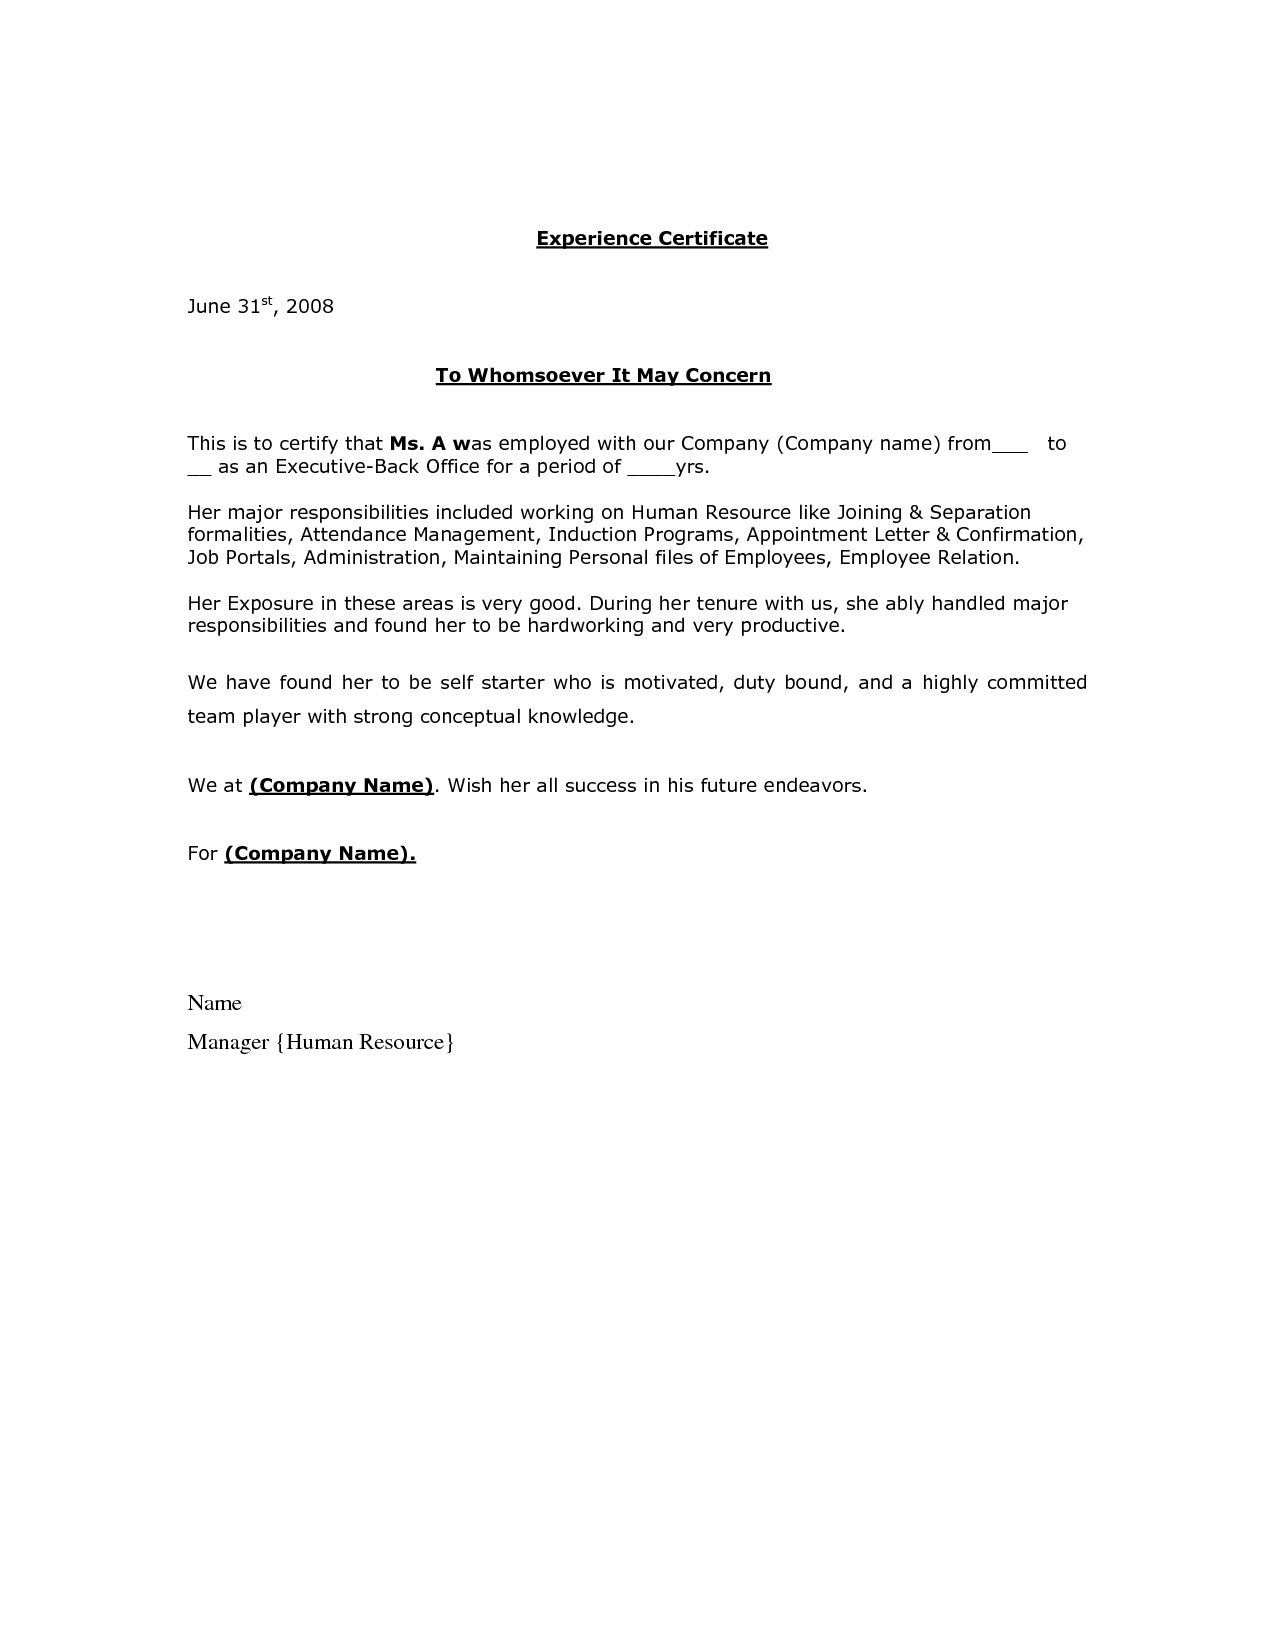 Pin By Varun Reddy On Experience Letter Job Resume